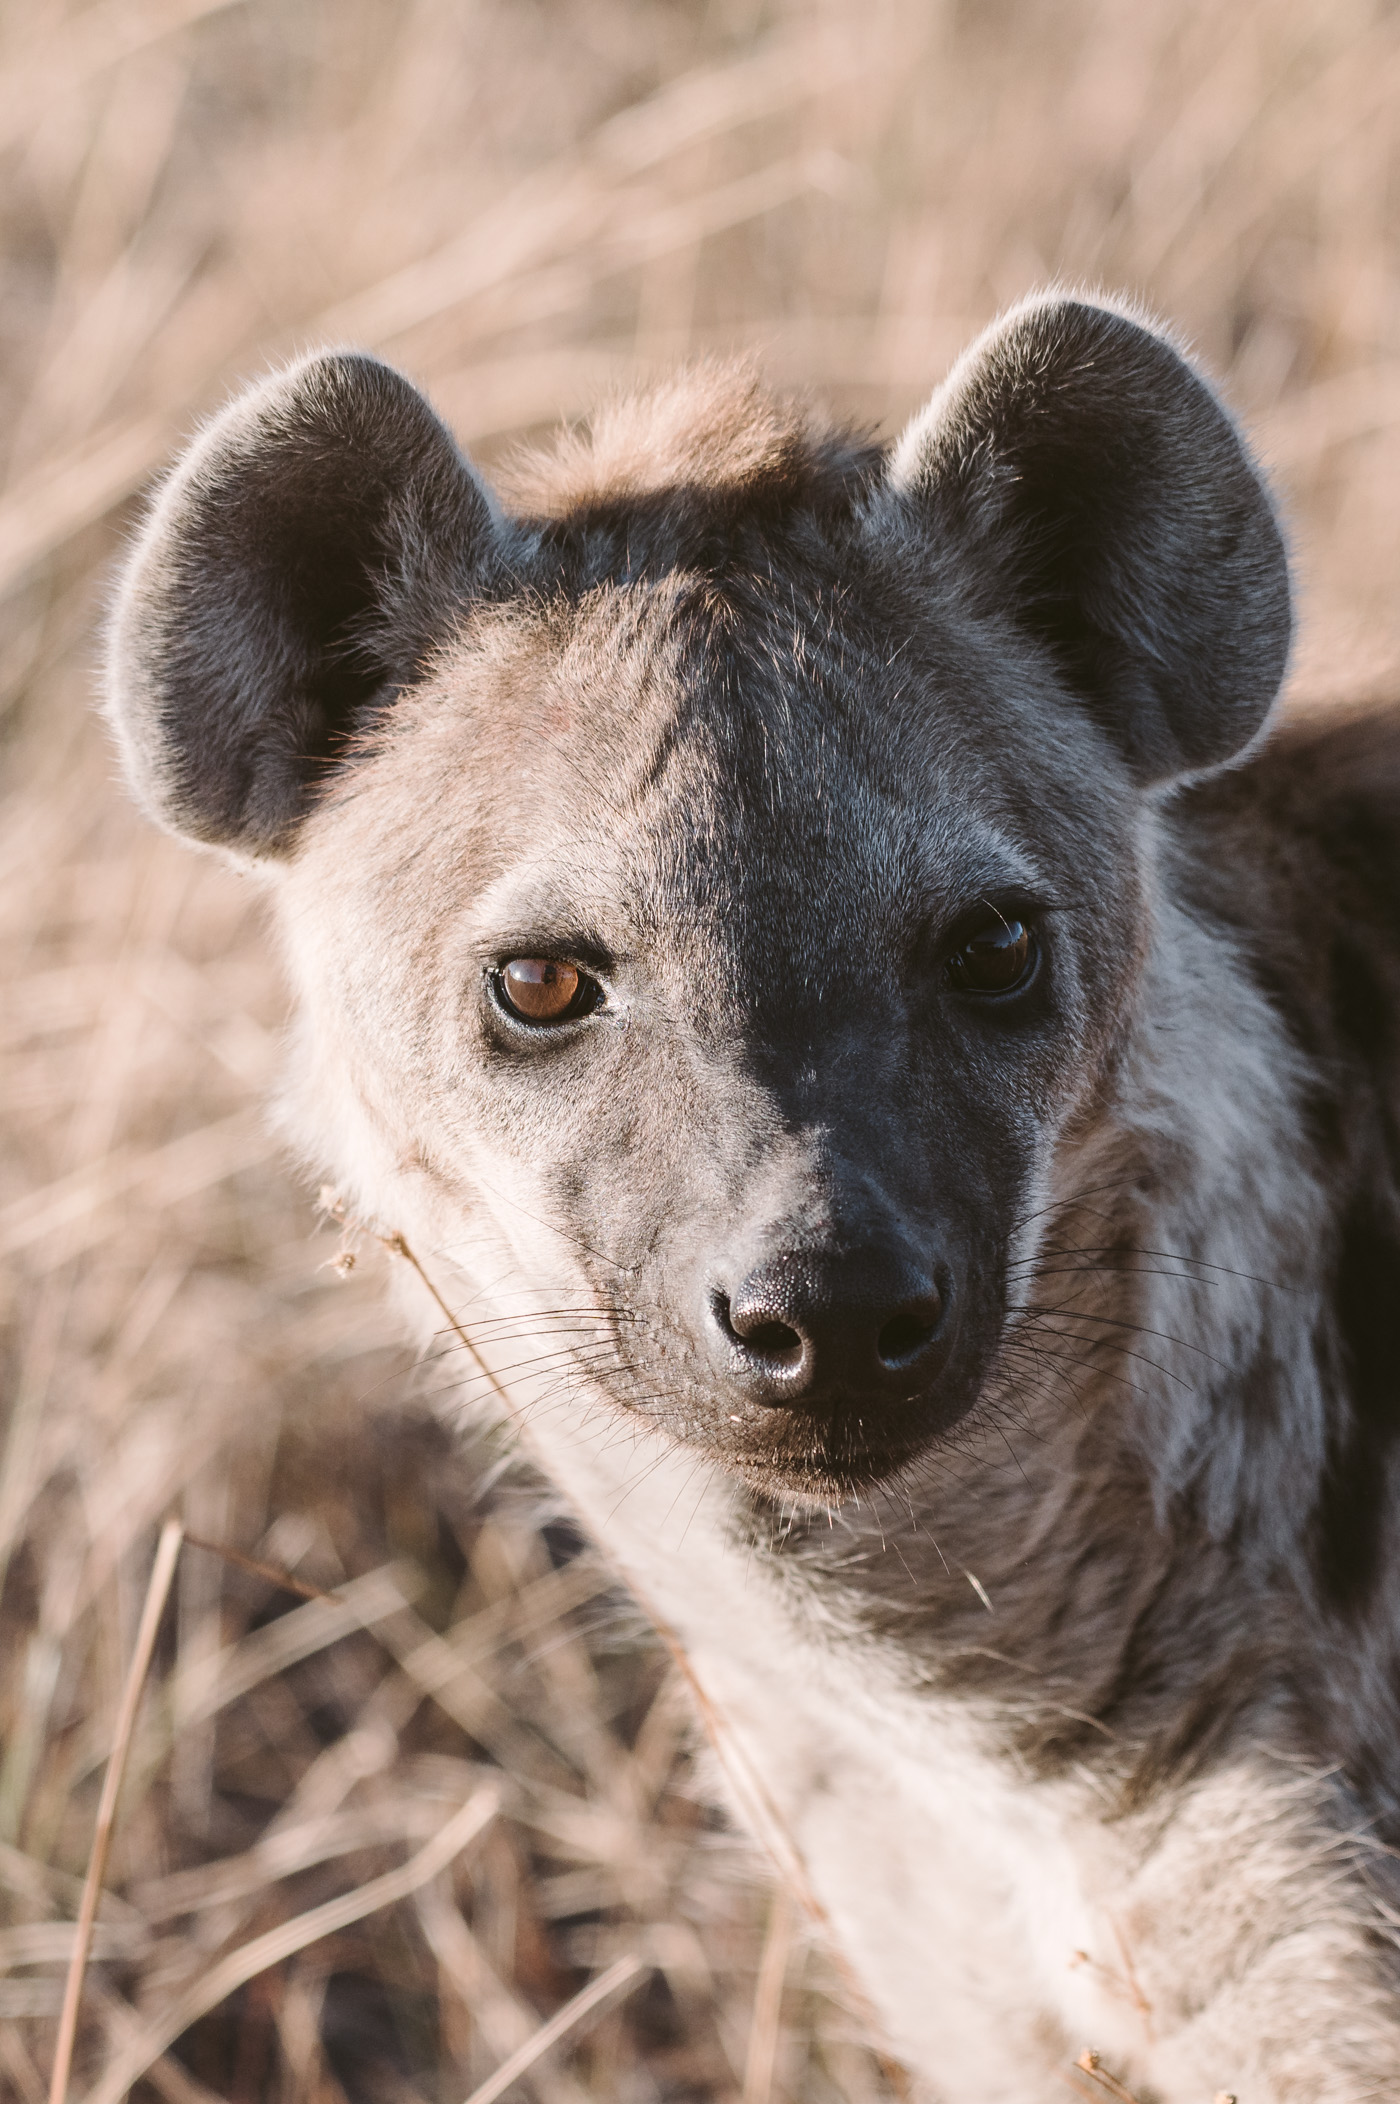 A hyena in the Okavango Delta